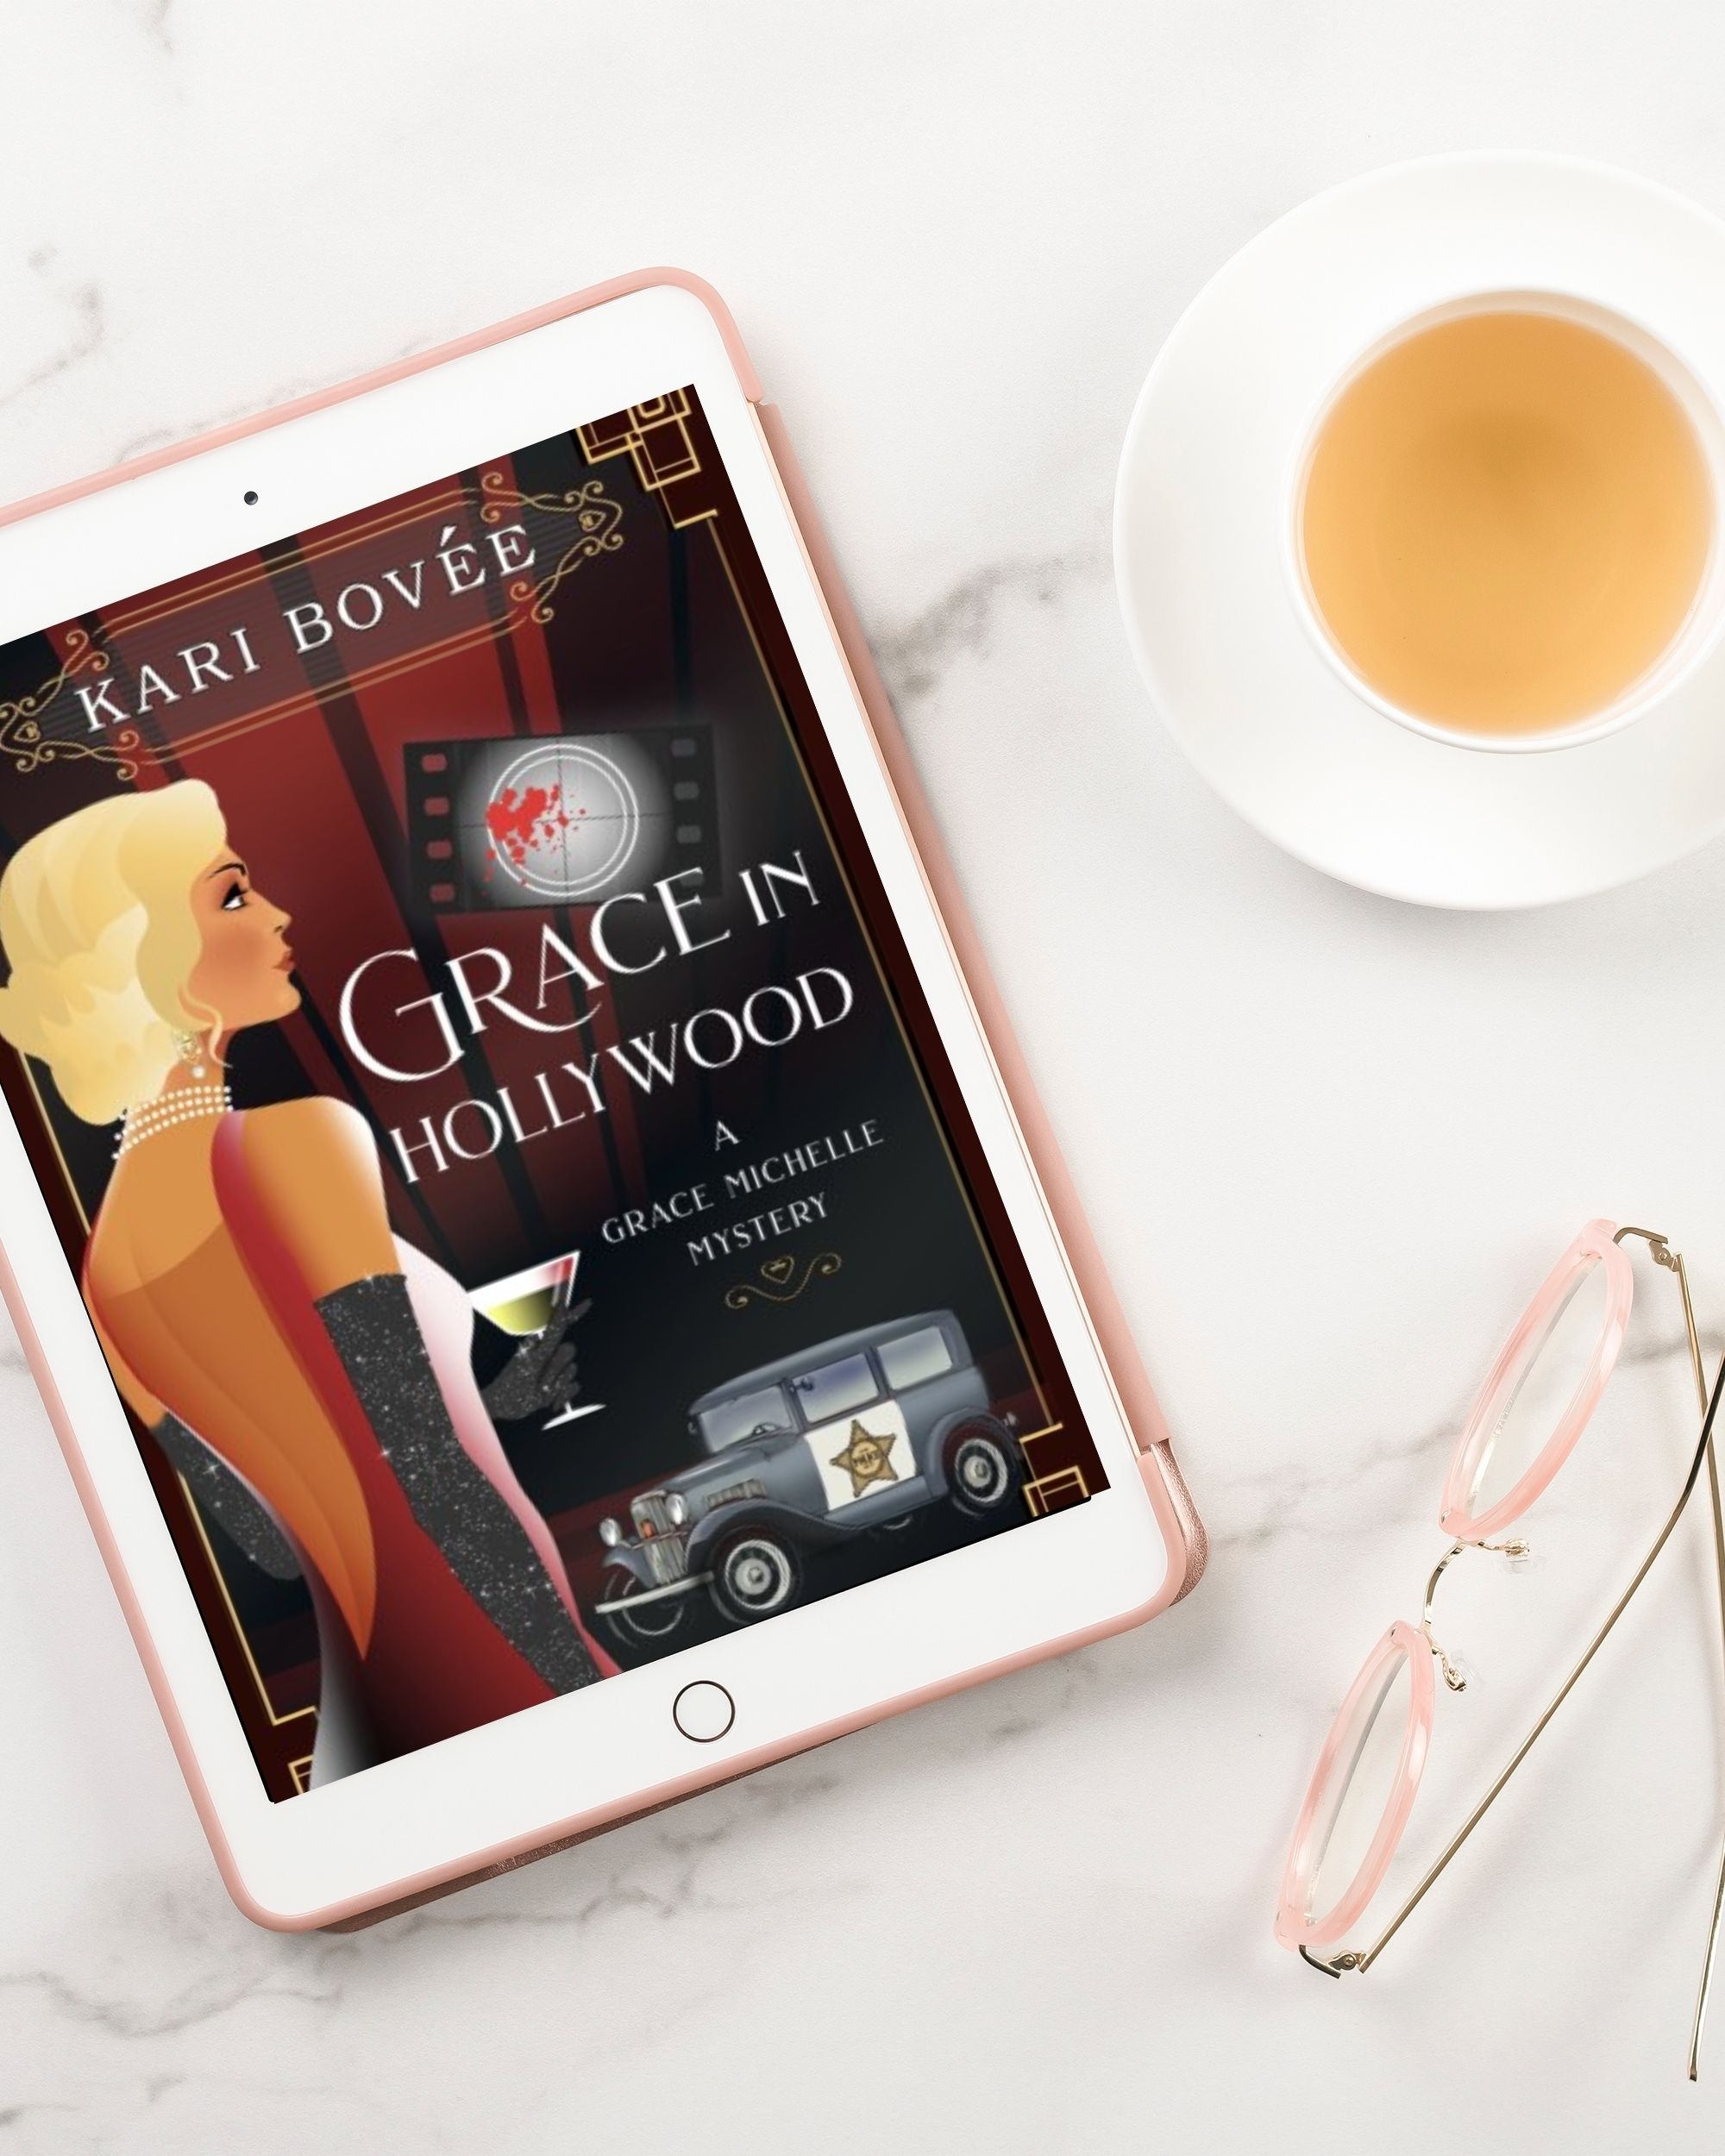 Grace in Hollywood by Kari Bovee | Book Review + Author Interview